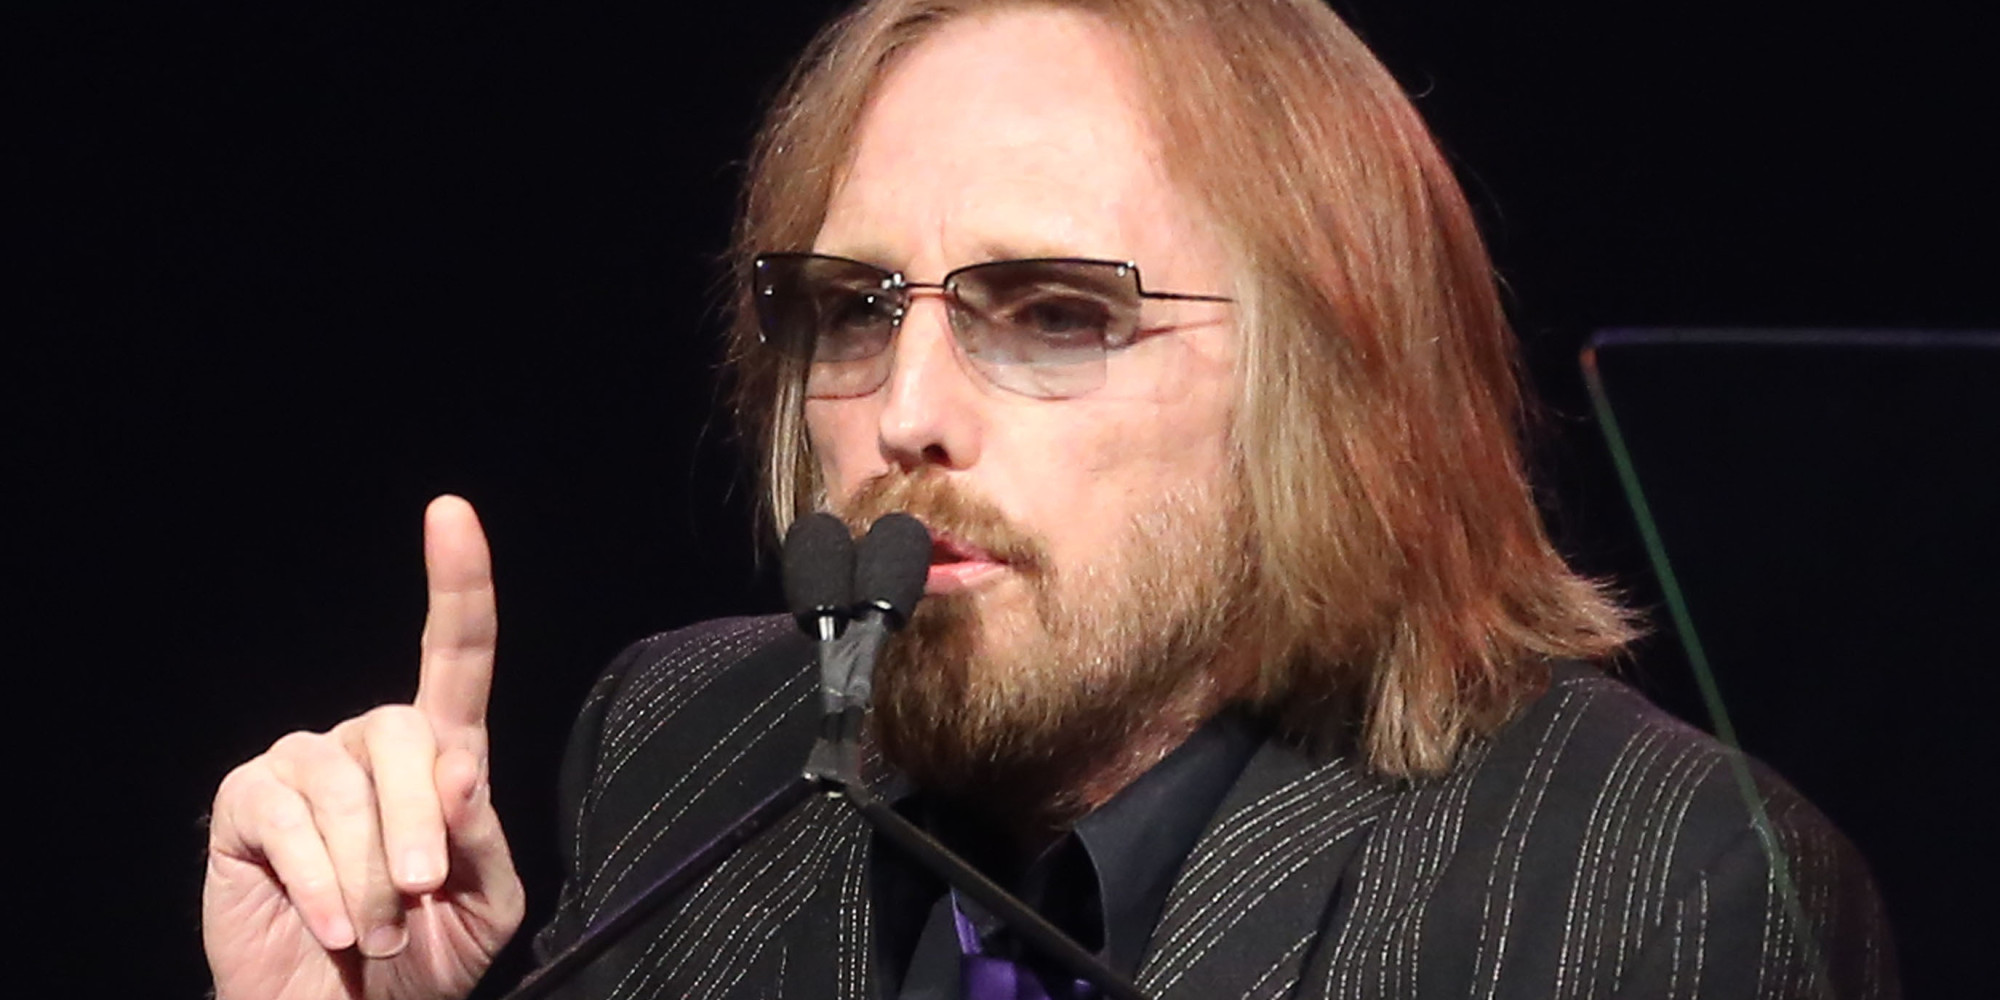 Tom Petty Criticizes Catholic Church For Sex Abuses In New